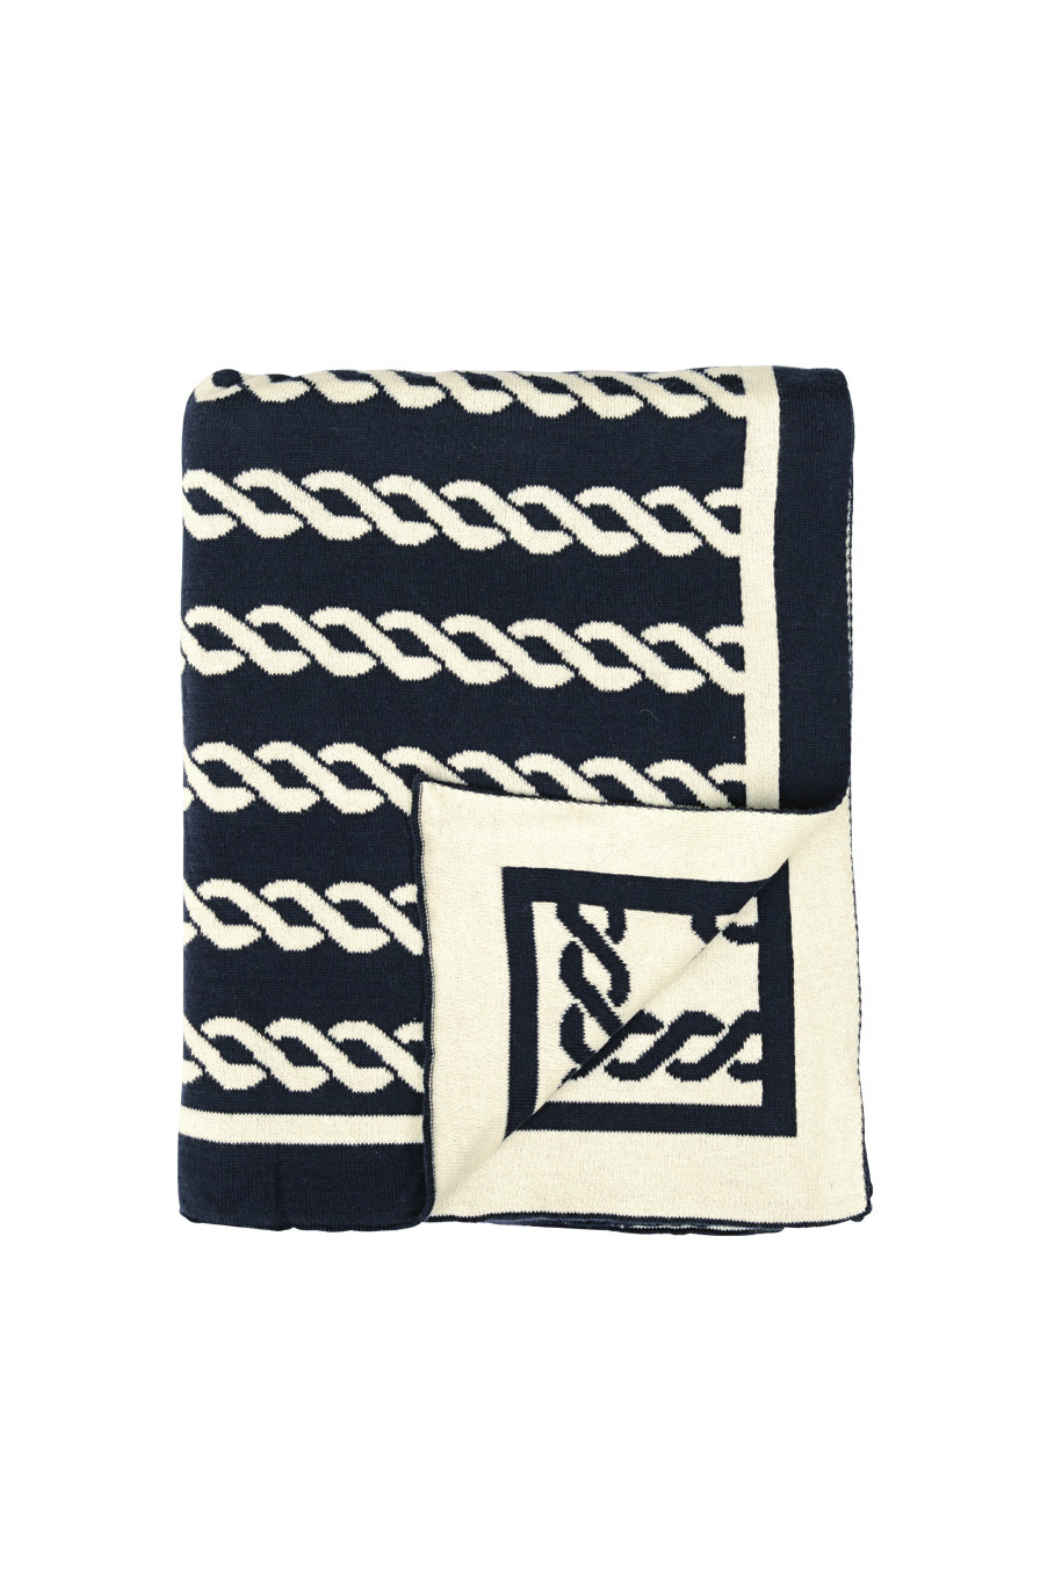 Darzzi Nautico Rope Knitted Throw - Main Image